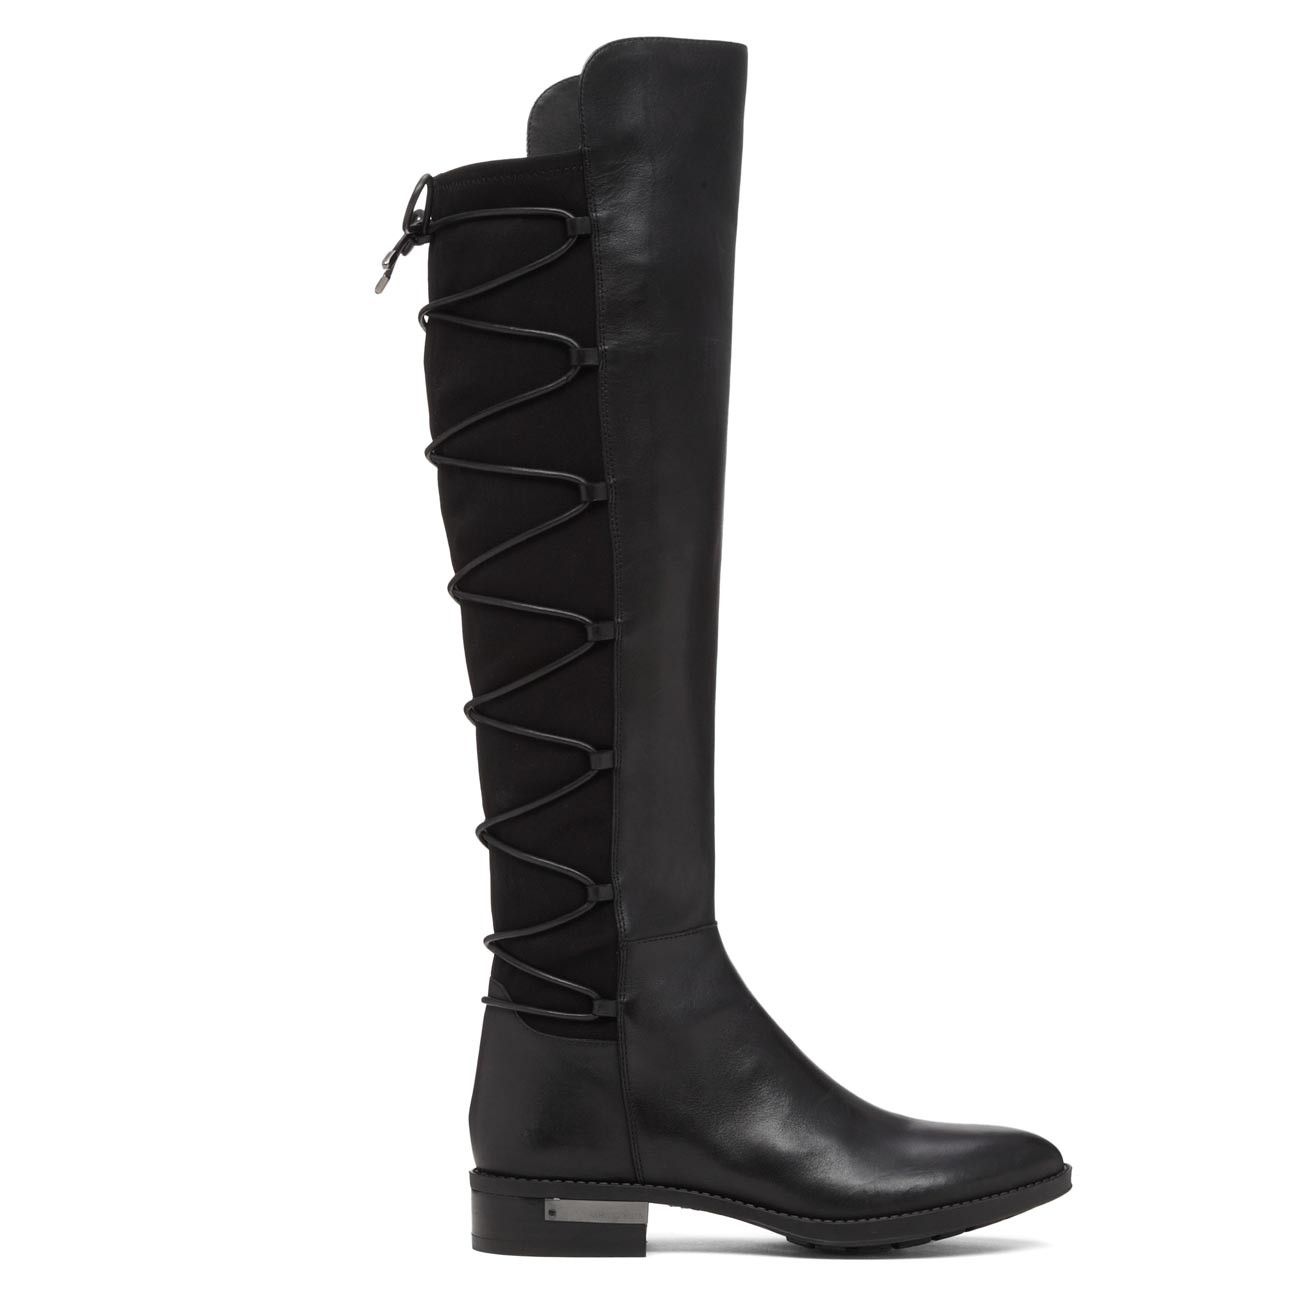 ed6777bfd20384 Vince Camuto Womens Parle Leather Closed Toe Knee High Fashion, Black, Size  6.5